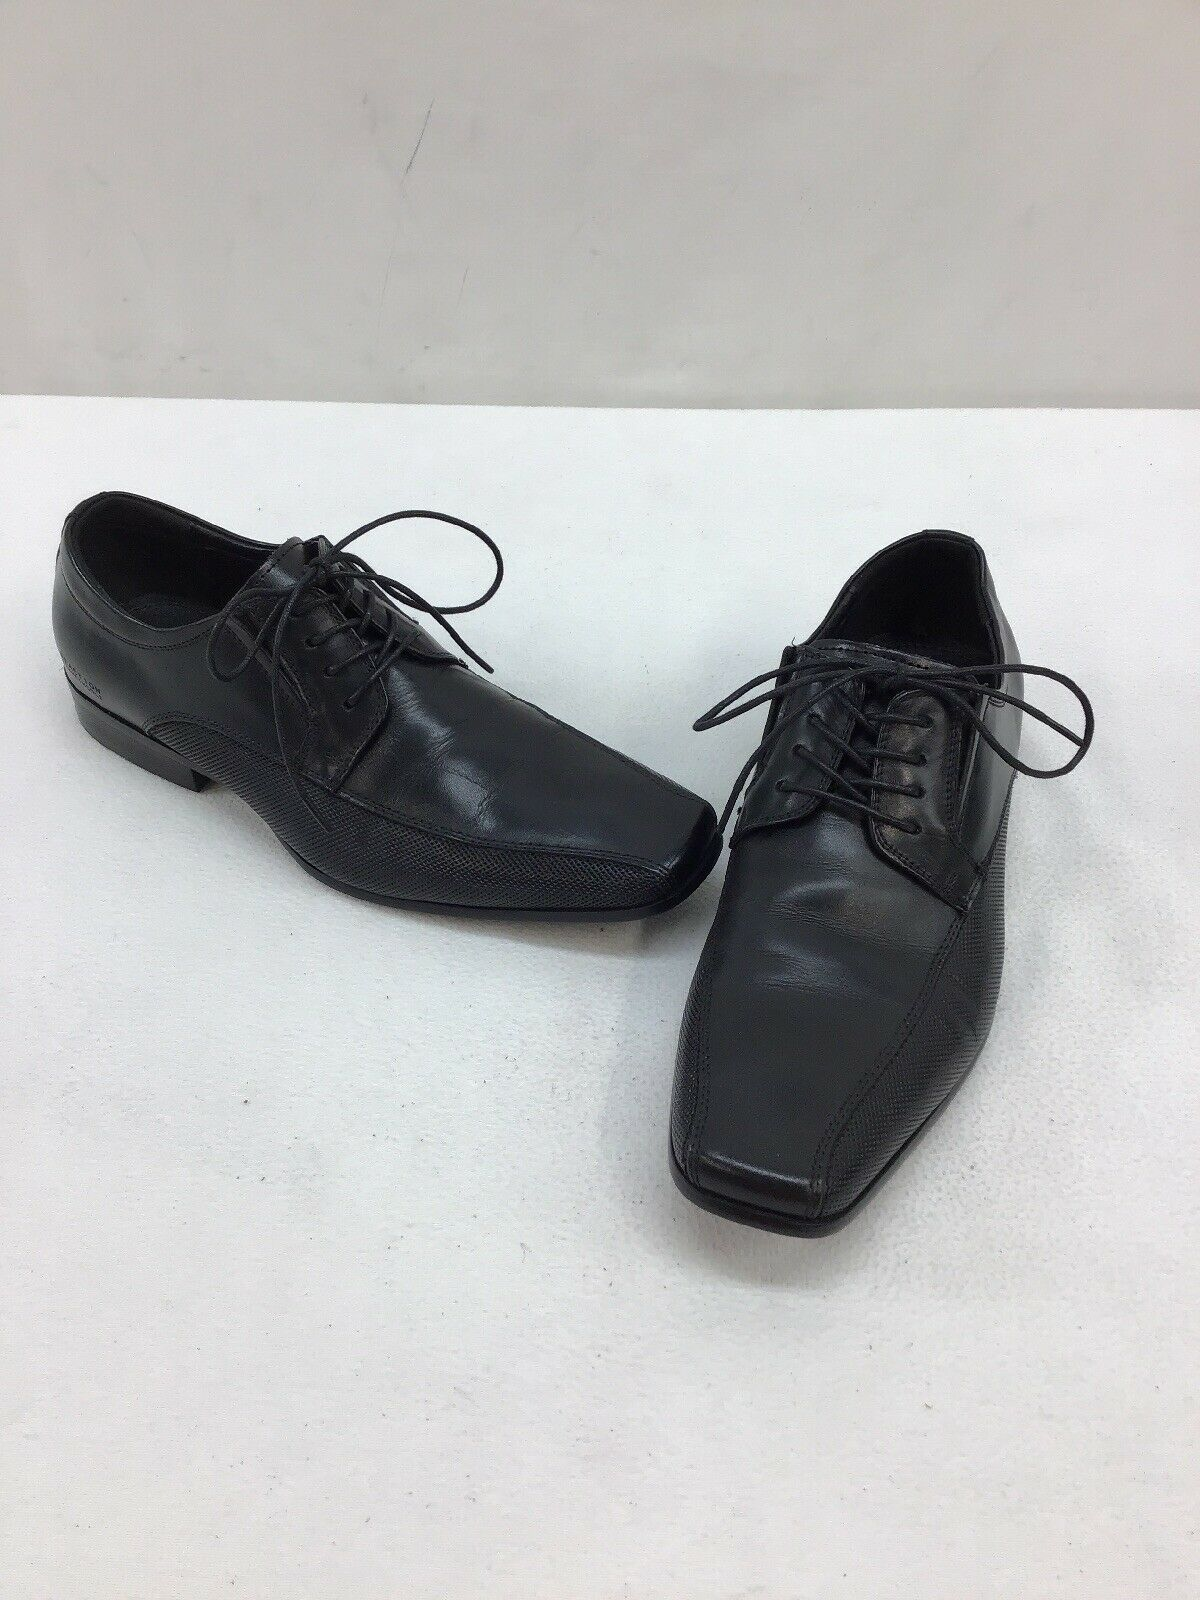 Kenneth Cole Reaction Men's Tential Black Leather Oxfords Size 7M M93 OOS/